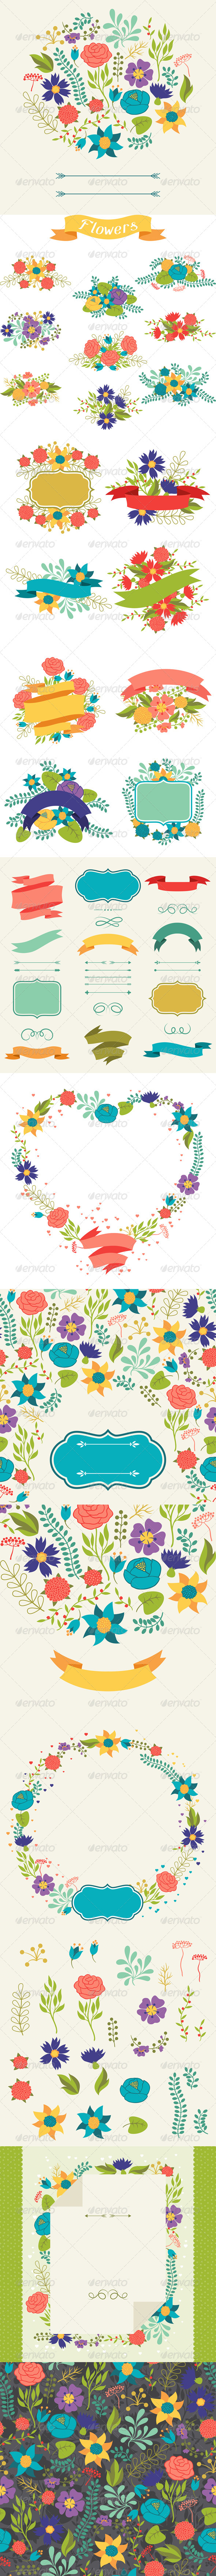 GraphicRiver Floral Backgrounds and Bouquets of Flowers 6324104